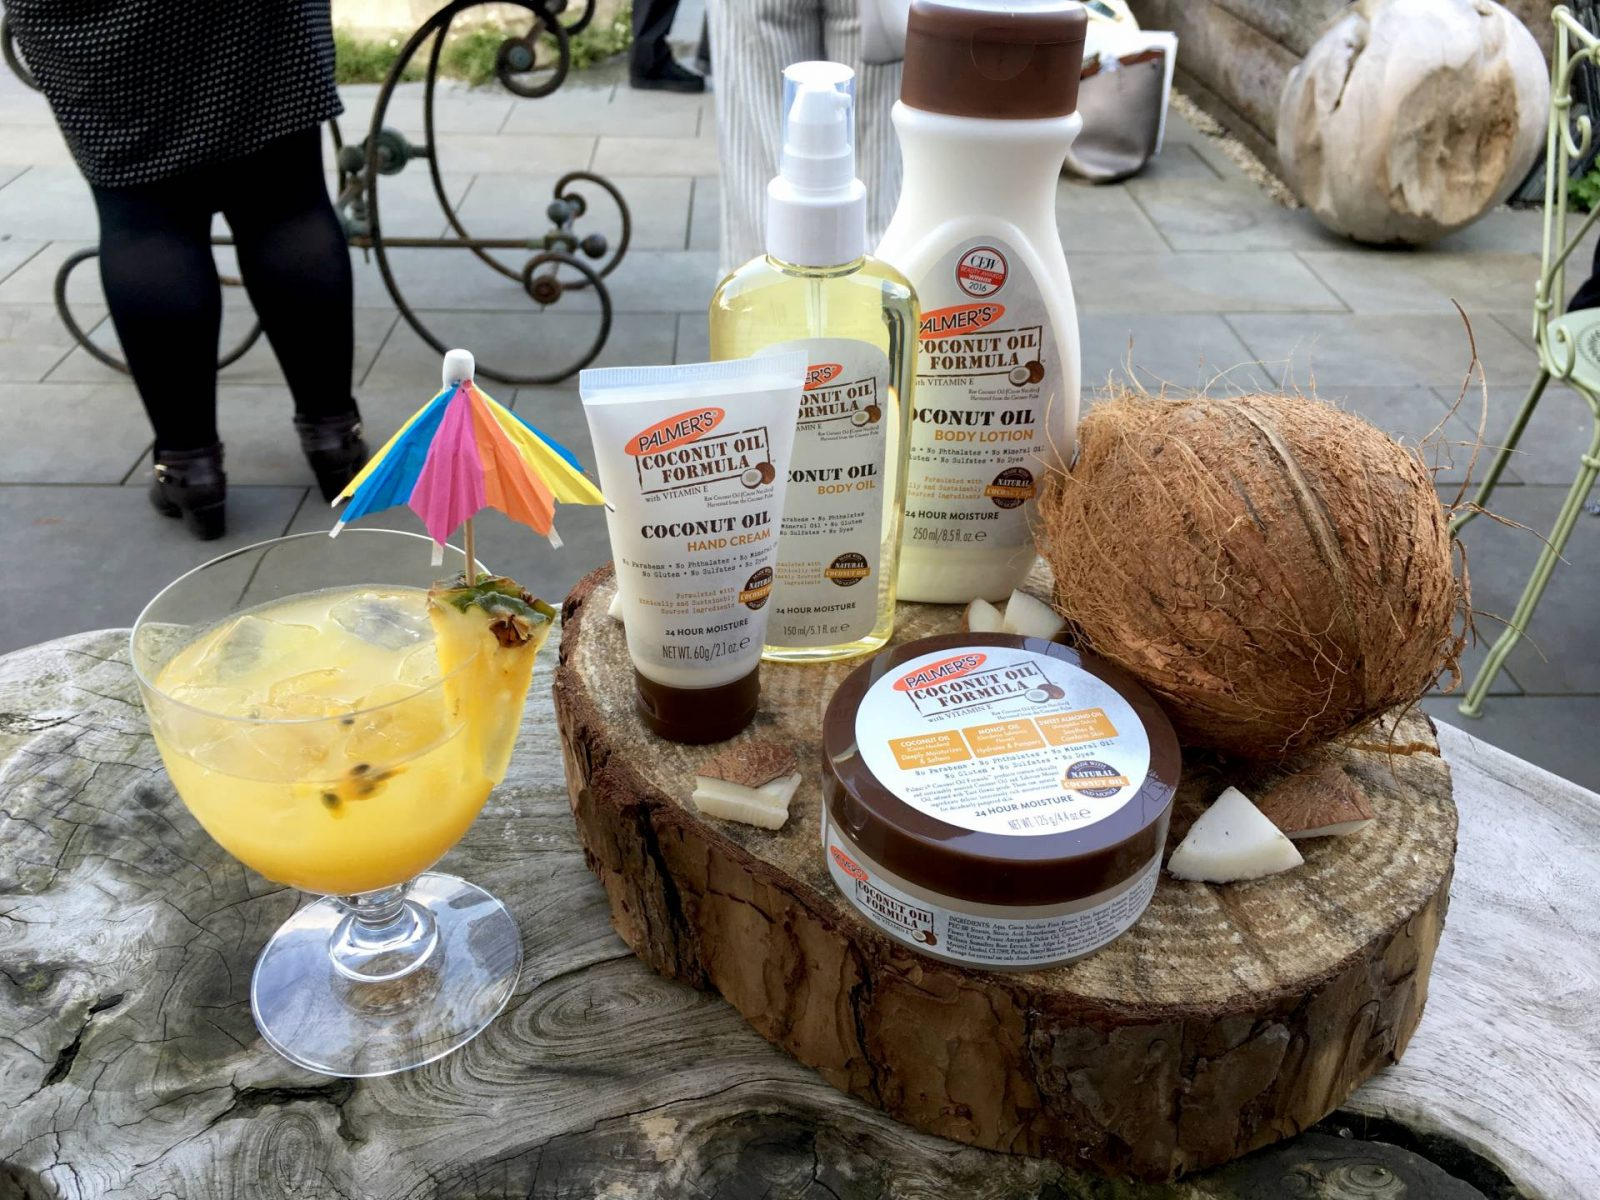 Launch Party For Palmer's Coconut Oil Formula